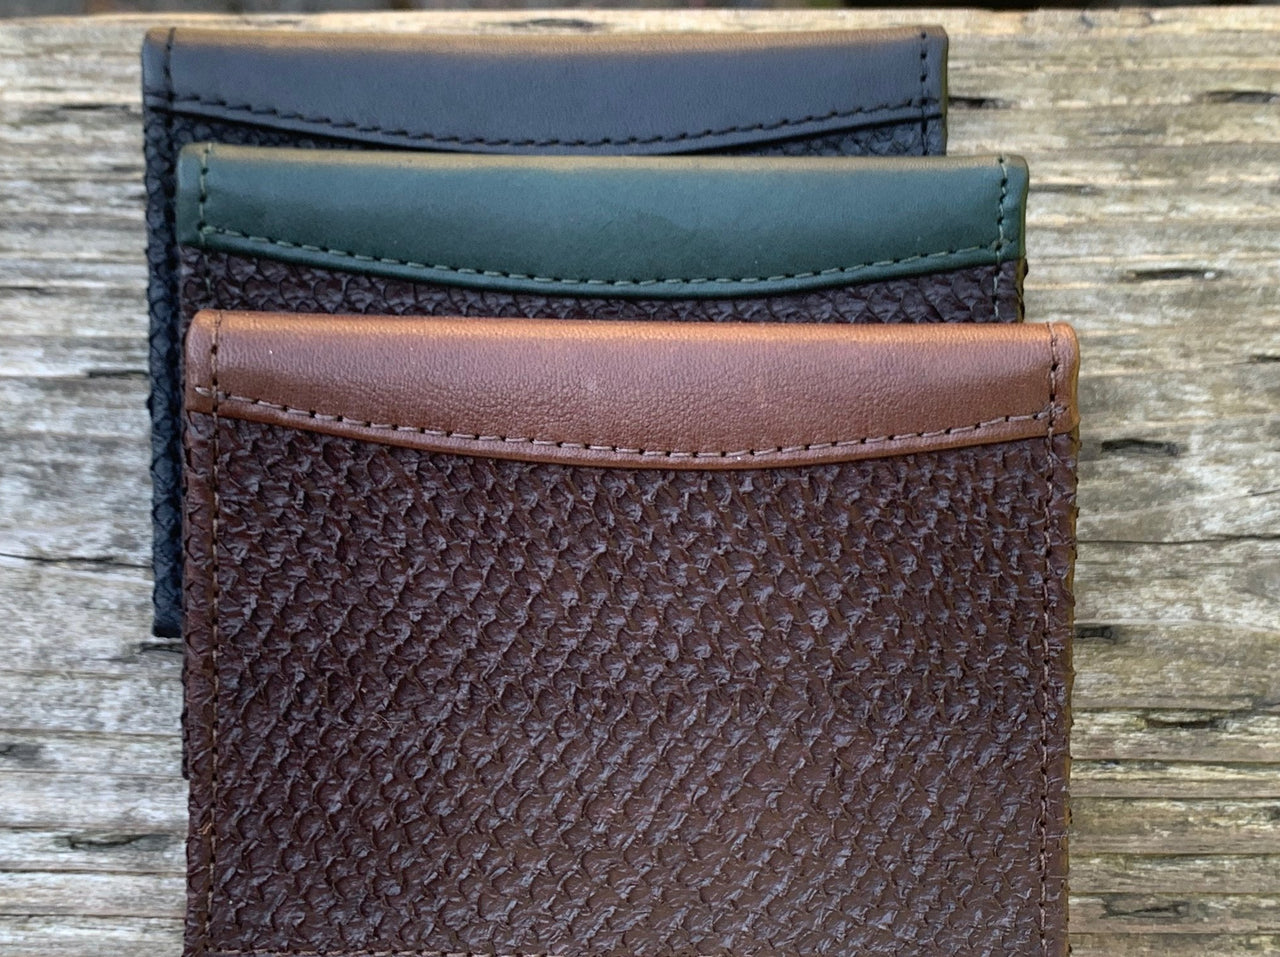 Deluxe Money Clip Wallet - Brown Salmon Leather